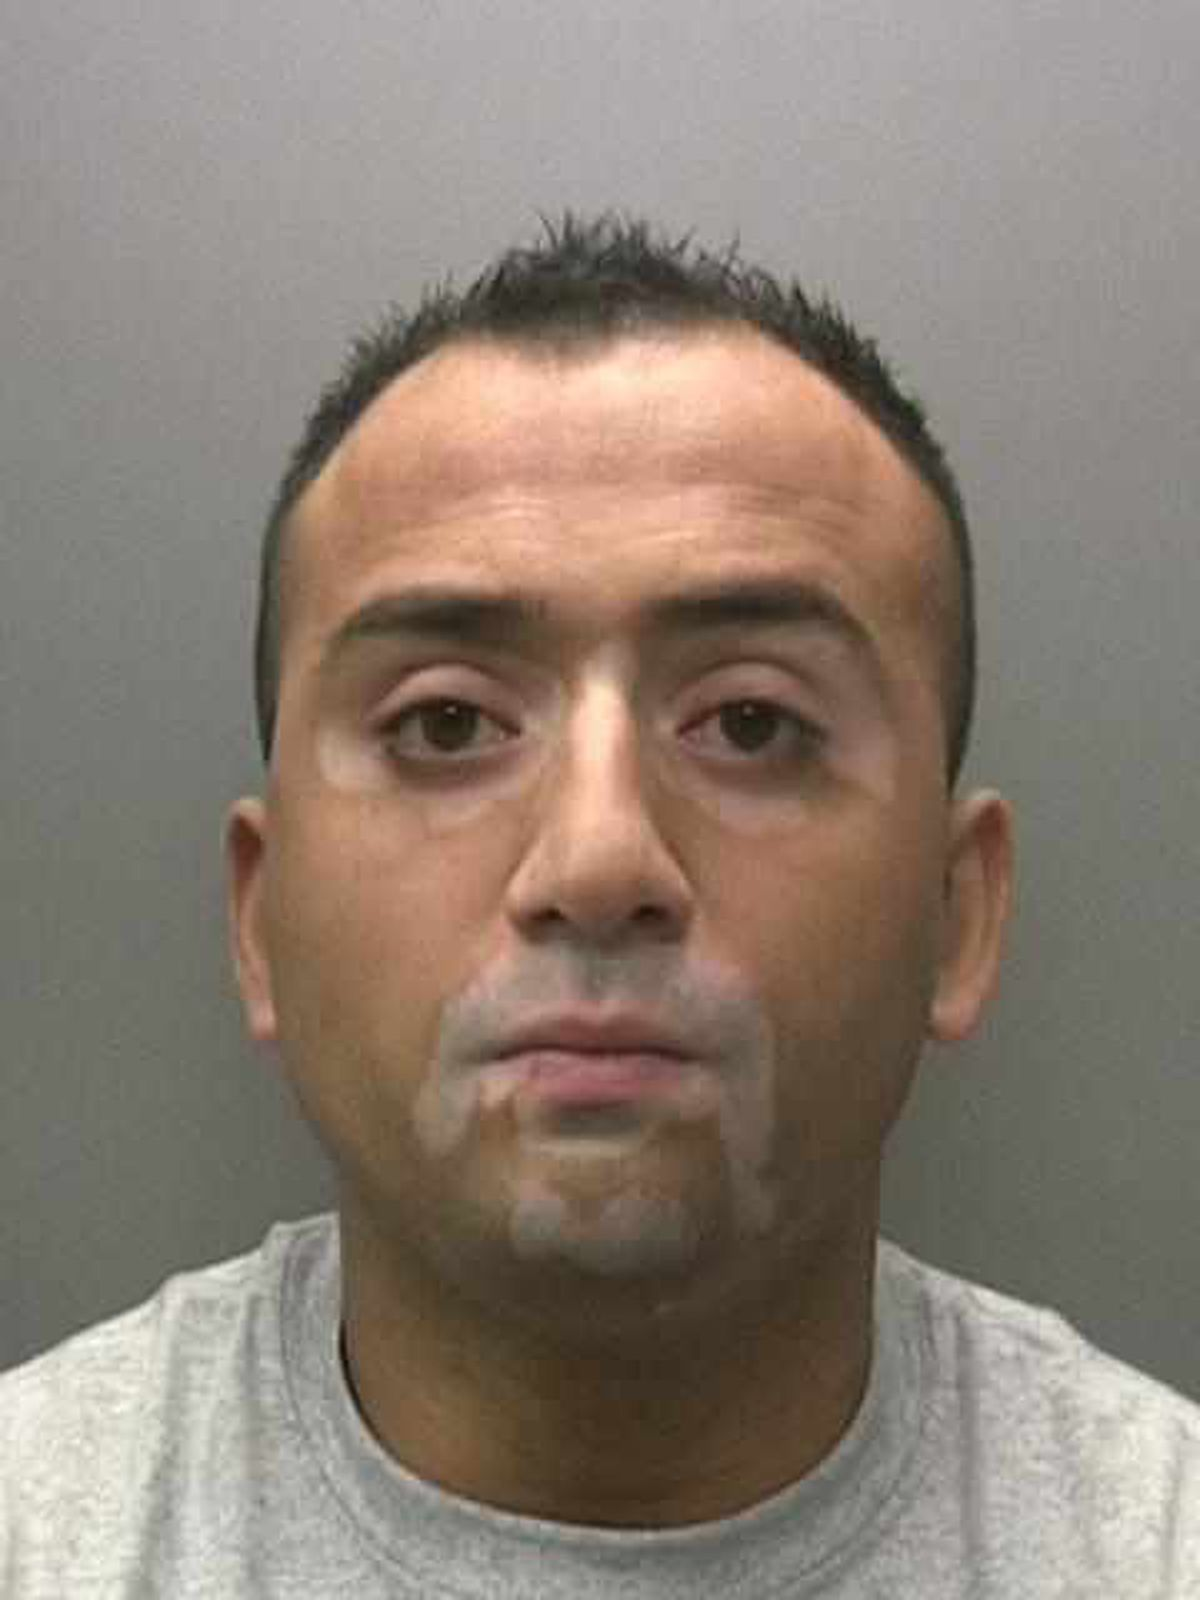 Suraj Mistry was convicted of manslaughter